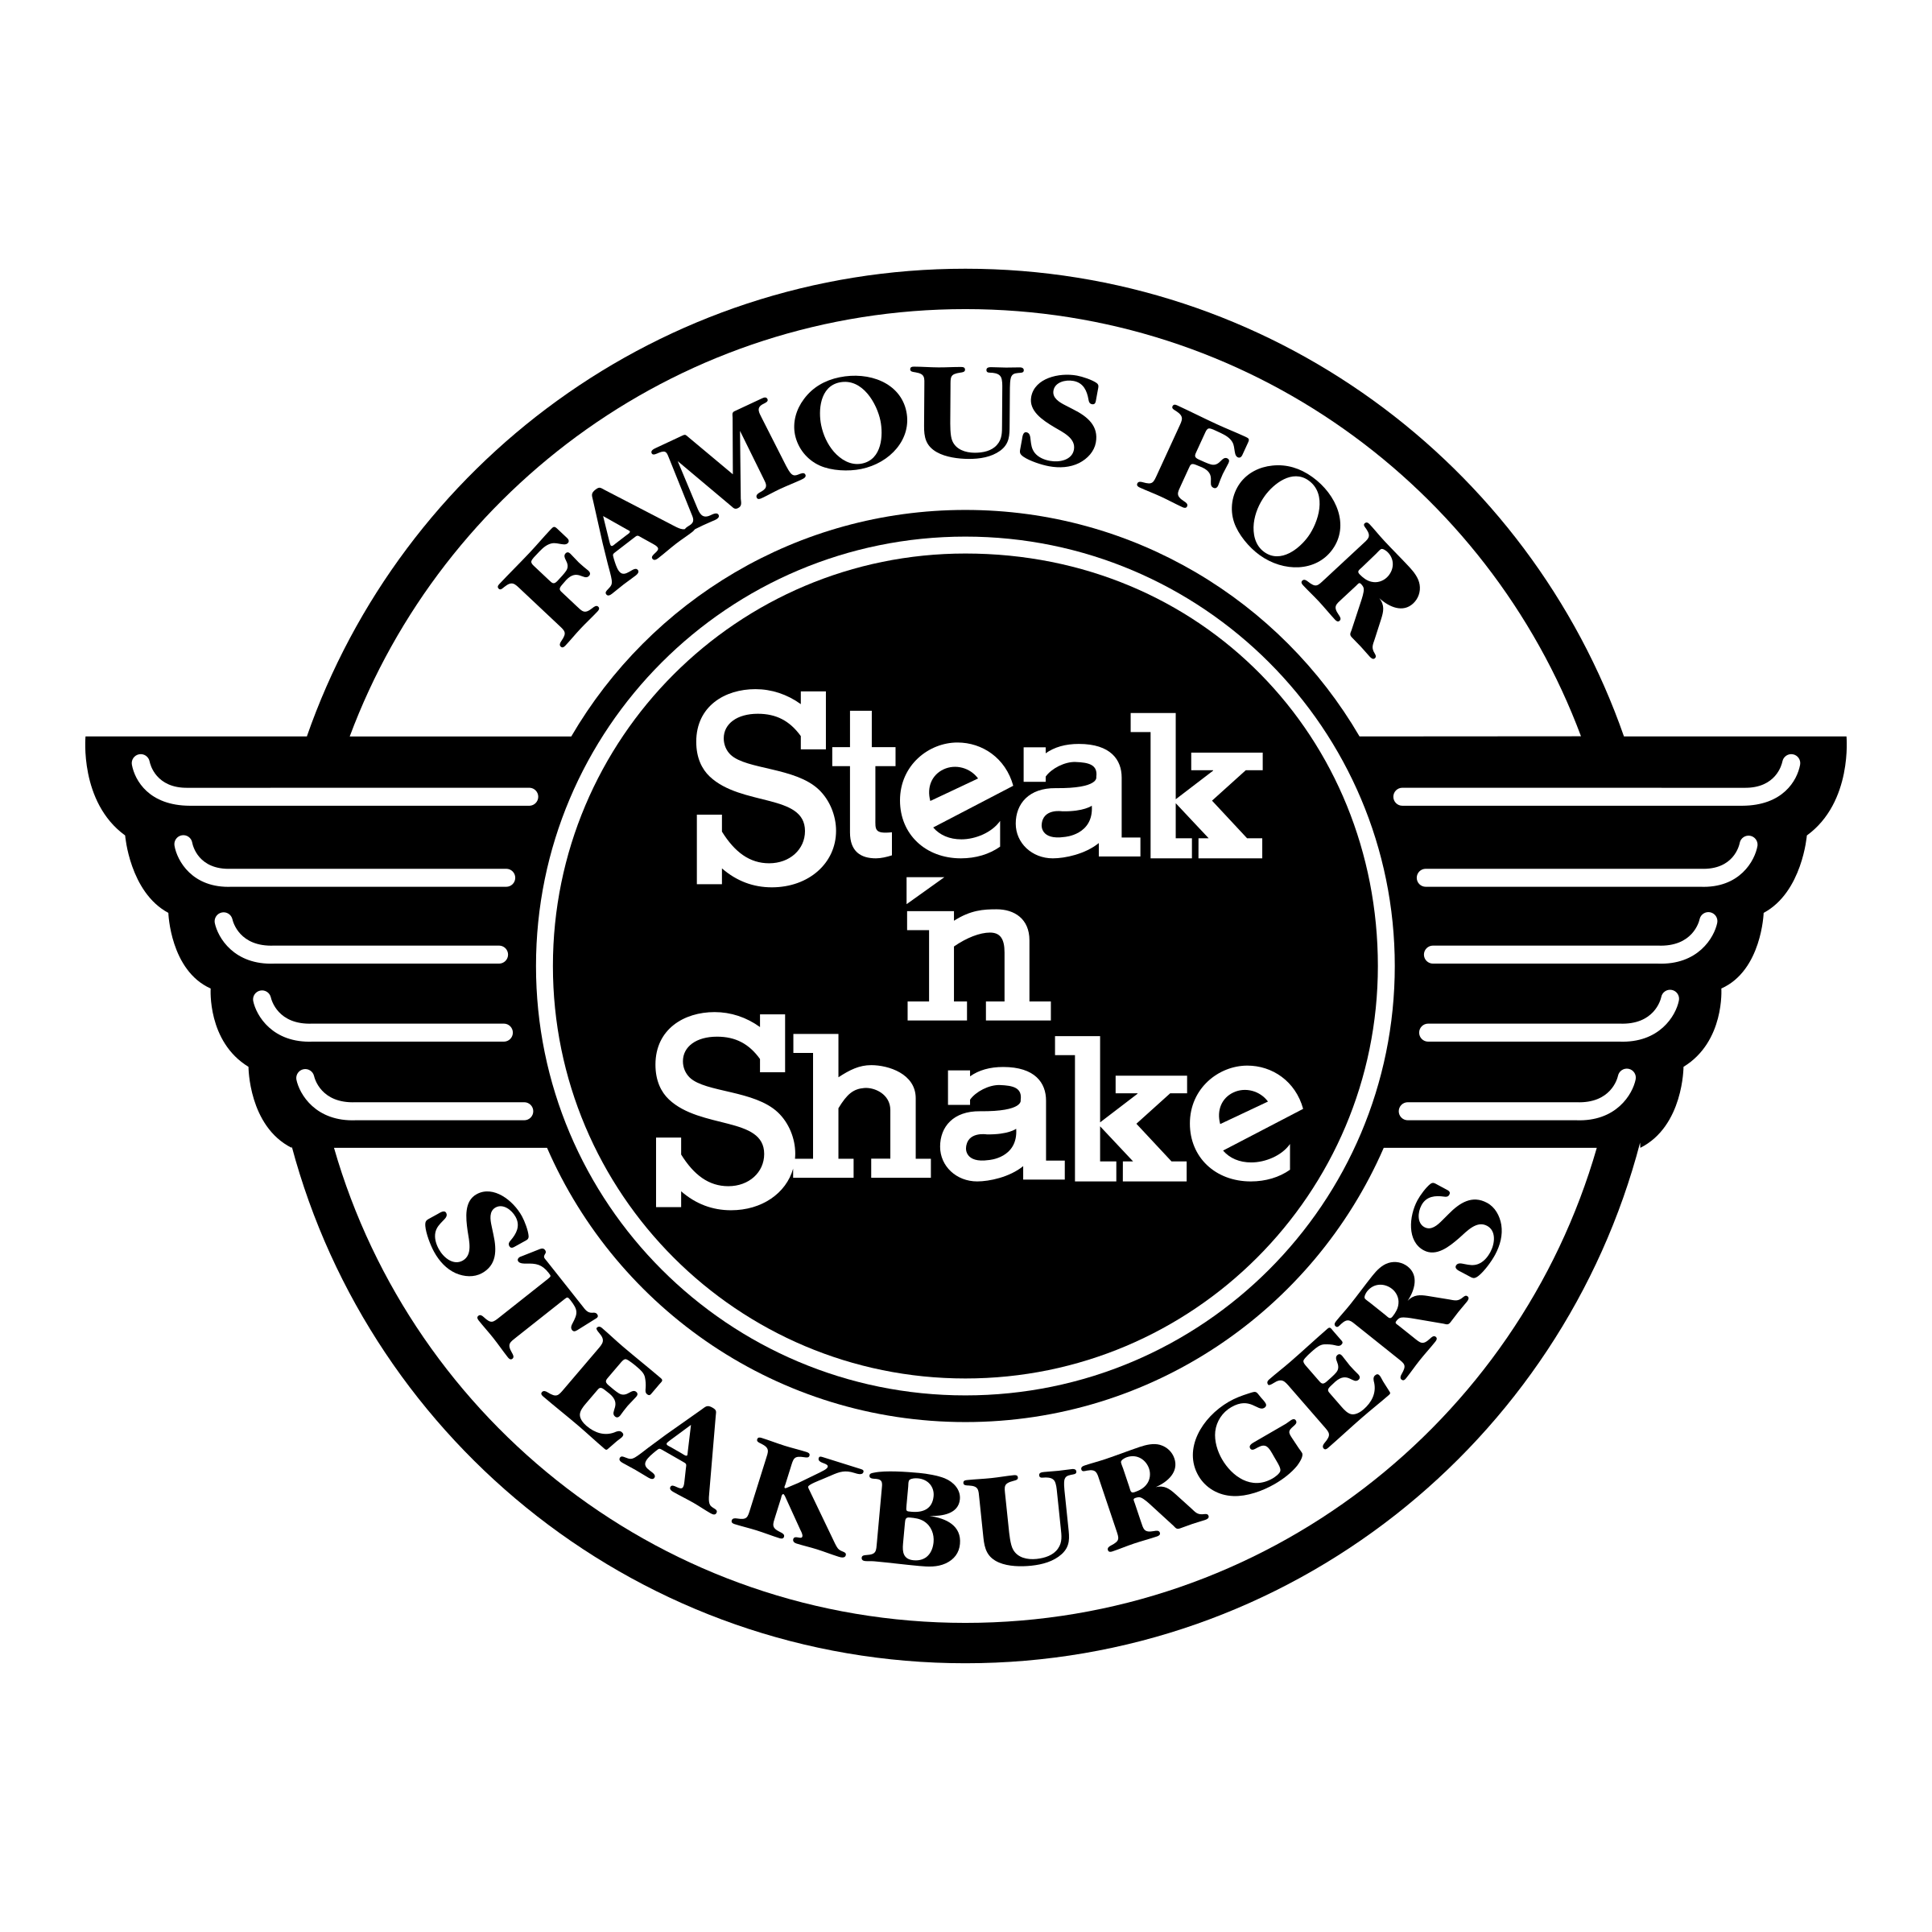 steak n shake diet coke caffeine-free